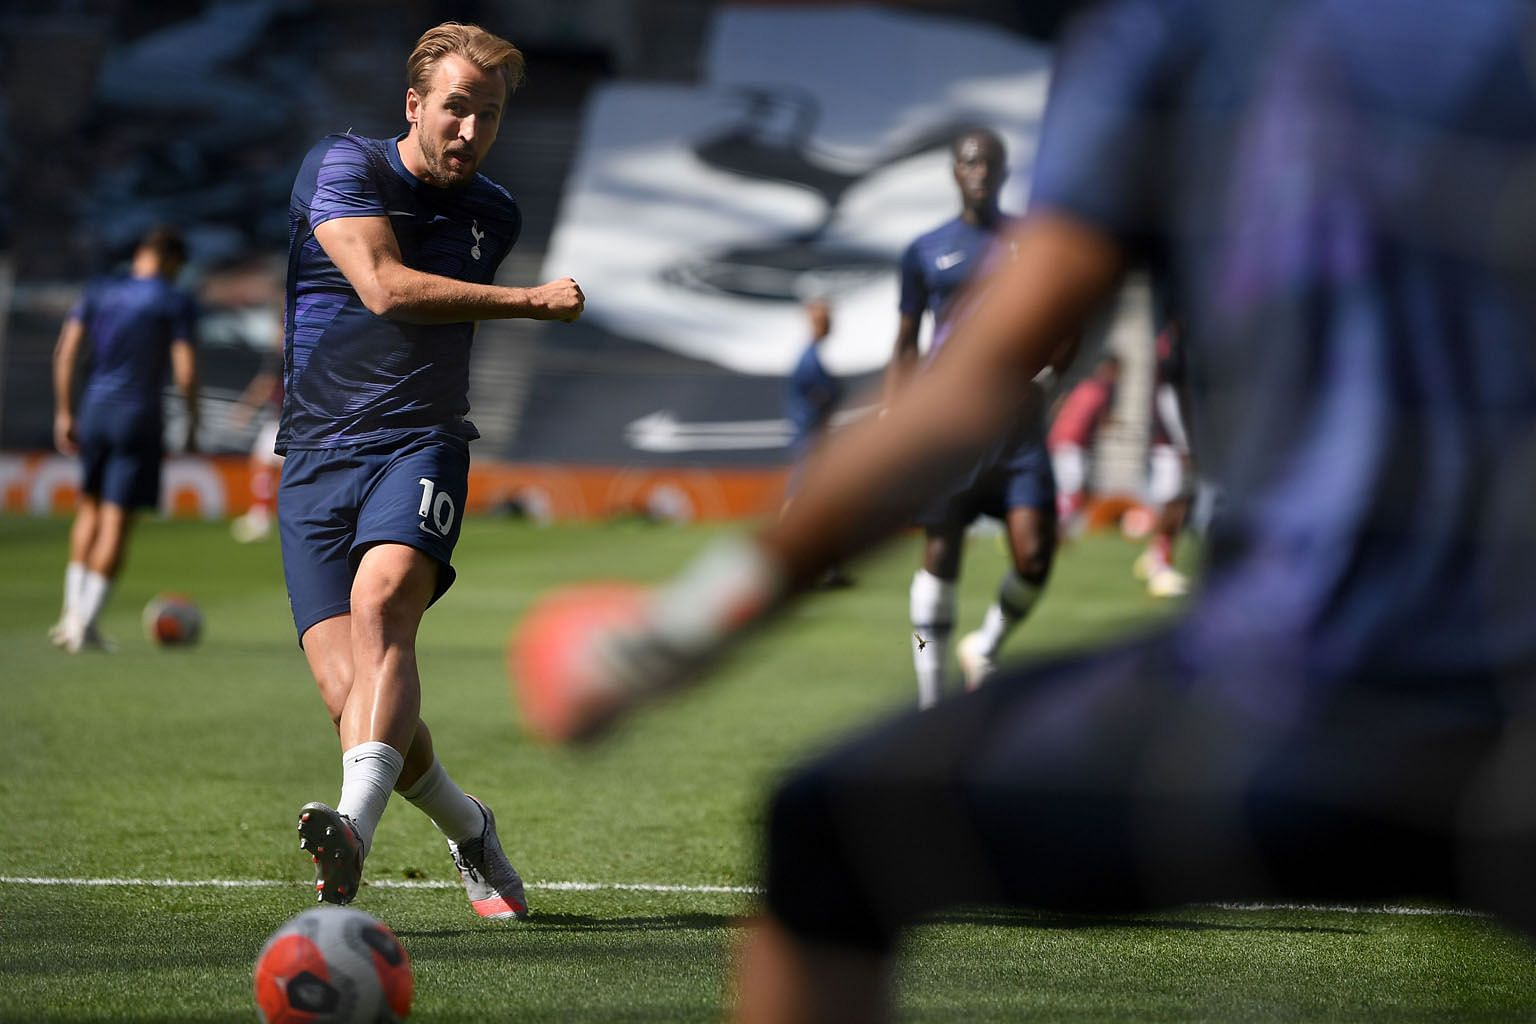 Fit-again Harry Kane will be key to Spurs' hopes of returning to the top four. He was limited to 29 league appearances last term but was still top scorer with 18 goals. PHOTO: AGENCE FRANCE-PRESSE